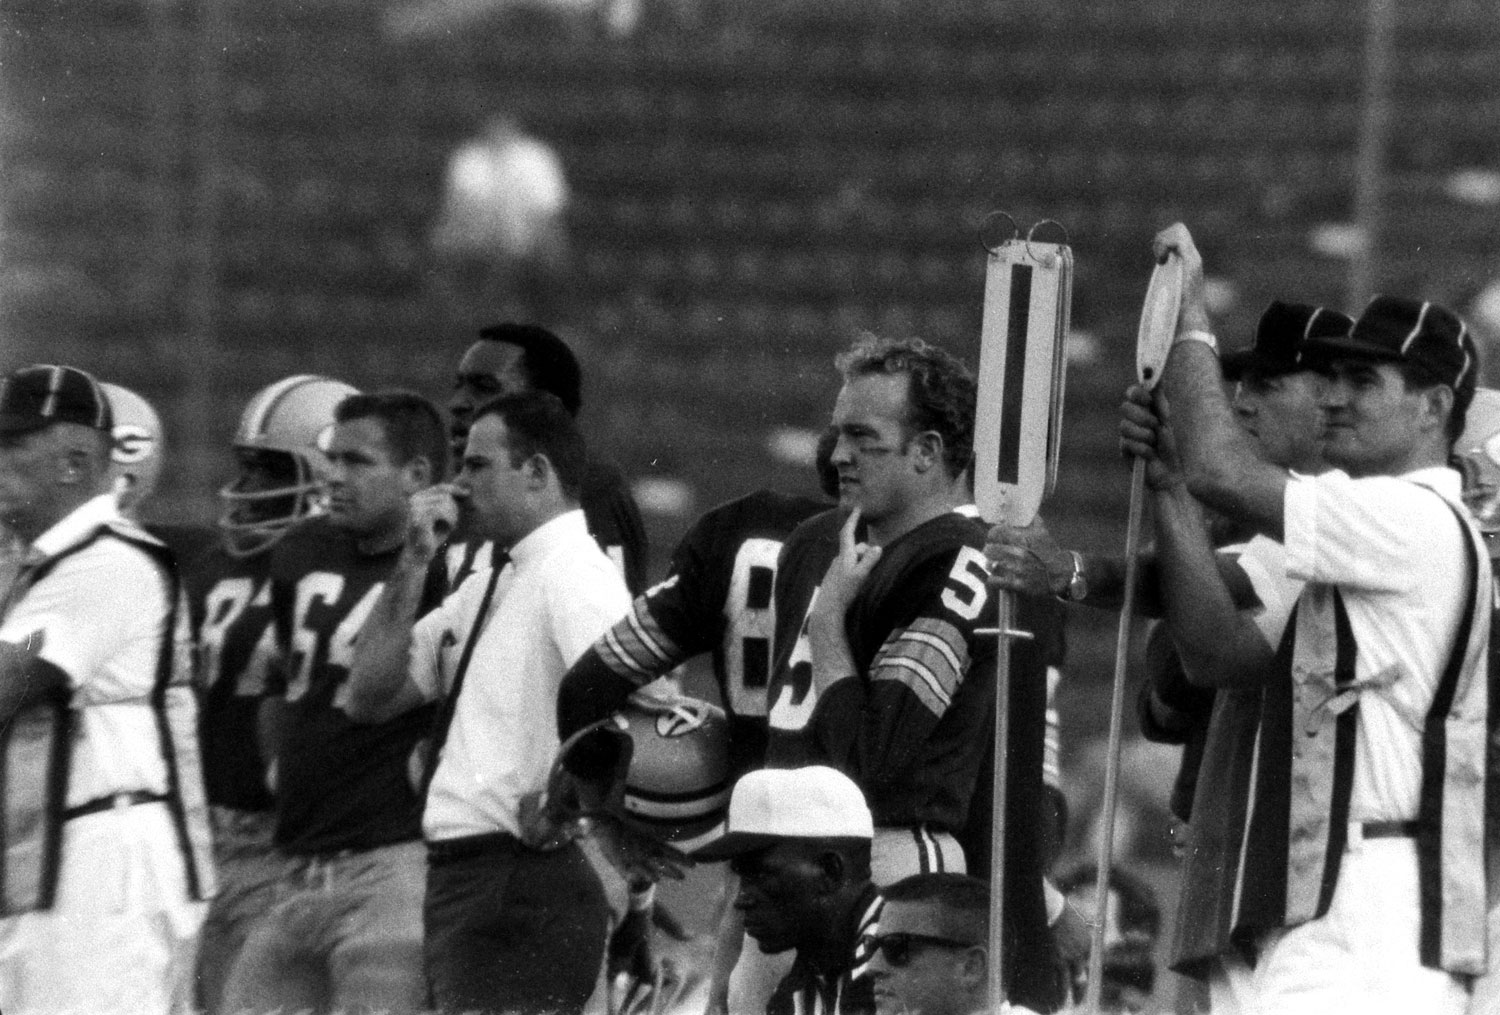 <b>Not published in LIFE.</b> Paul Hornung (#5), a future Hall of Famer who did not play in the game due to injury, Super Bowl I, 1967.